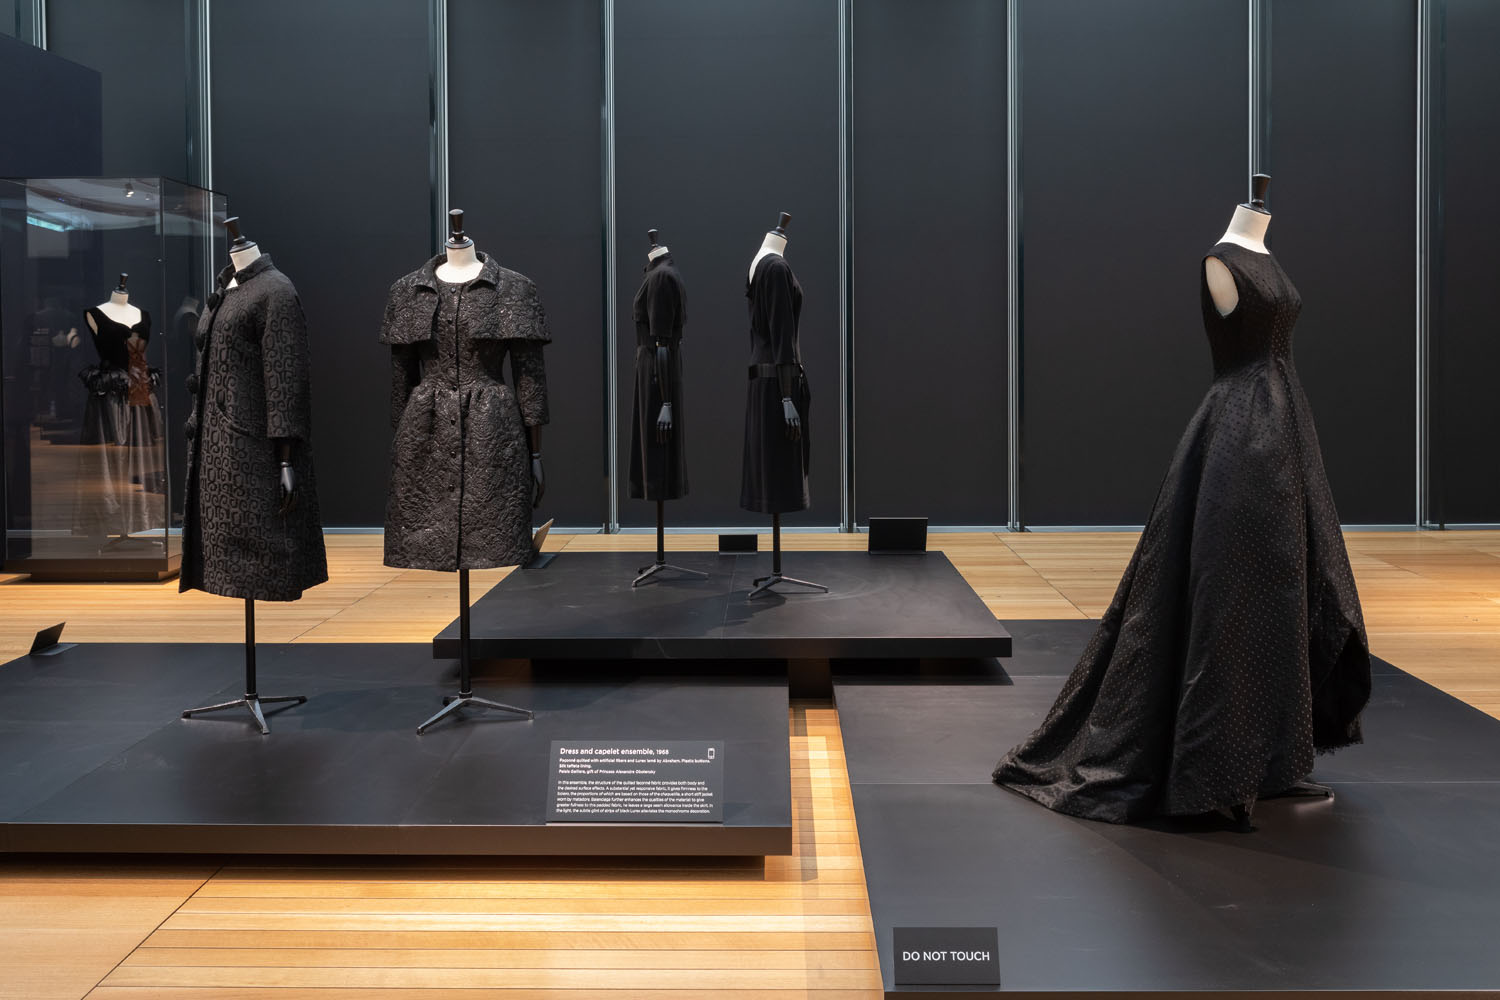 Balenciaga in Black at the Kimbell Museum was an overview of couturier Balenciaga' s career from the 1940s to the 1960s. Over 100 pieces of hand made dresses were featured, including gowns, suits and accessories, all black. The goal of the exhibition design was to accentuate the various shapes, volumes, textures, and silhouettes of Balenciaga' s timeless creations, and to encourage visitors to examine the exquisite detail in his work. Freestanding cases allowed for 36 0 degree, close-up viewing of the pieces, while cascading platforms enabled the composition of dramatic tableauxs.